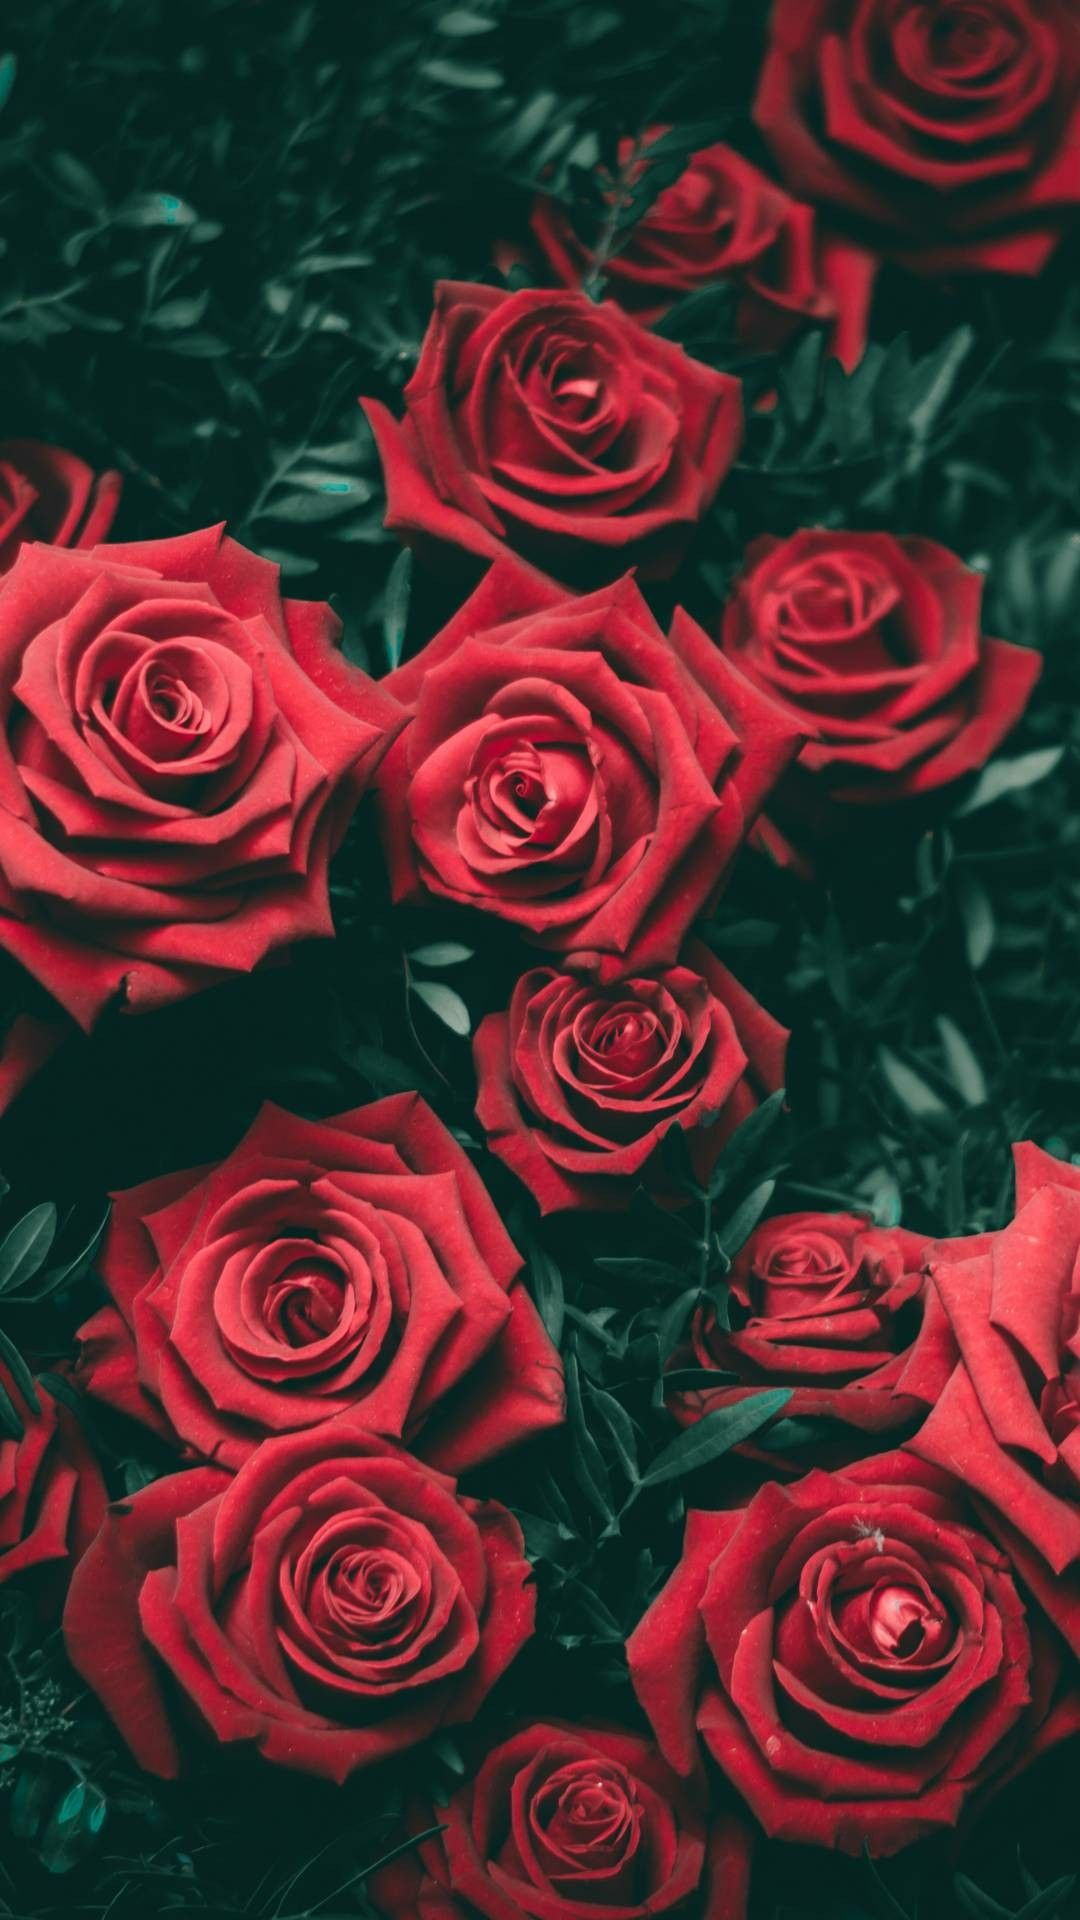 Red Rose Wallpaper | Awesome Mobile Wallpaper | Flowers, Flower wallpaper, Rose wallpaper